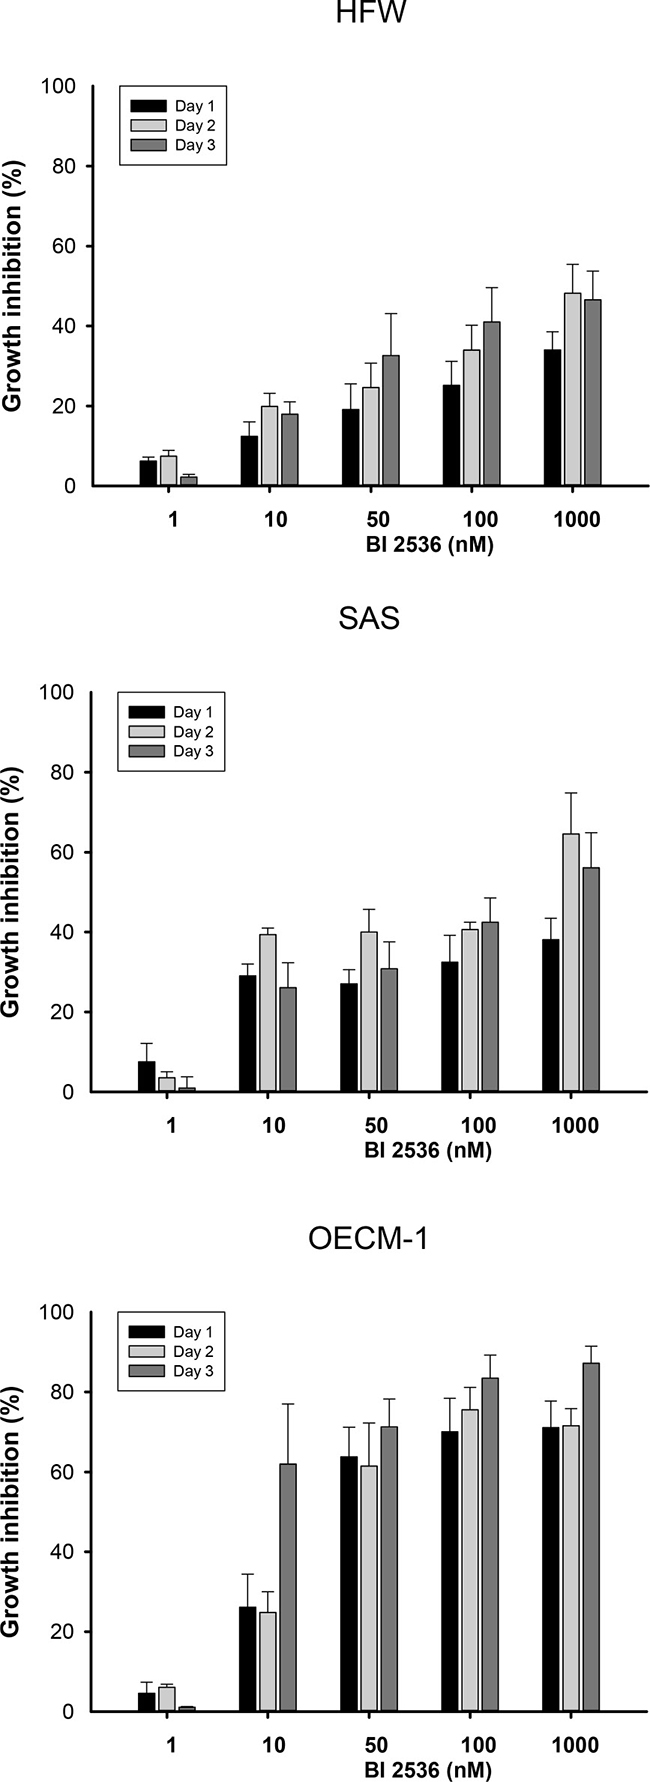 Cell viability of human fibroblasts (HFW) and OSCC (SAS and OECM-1) cells treated with various concentrations of BI2536.